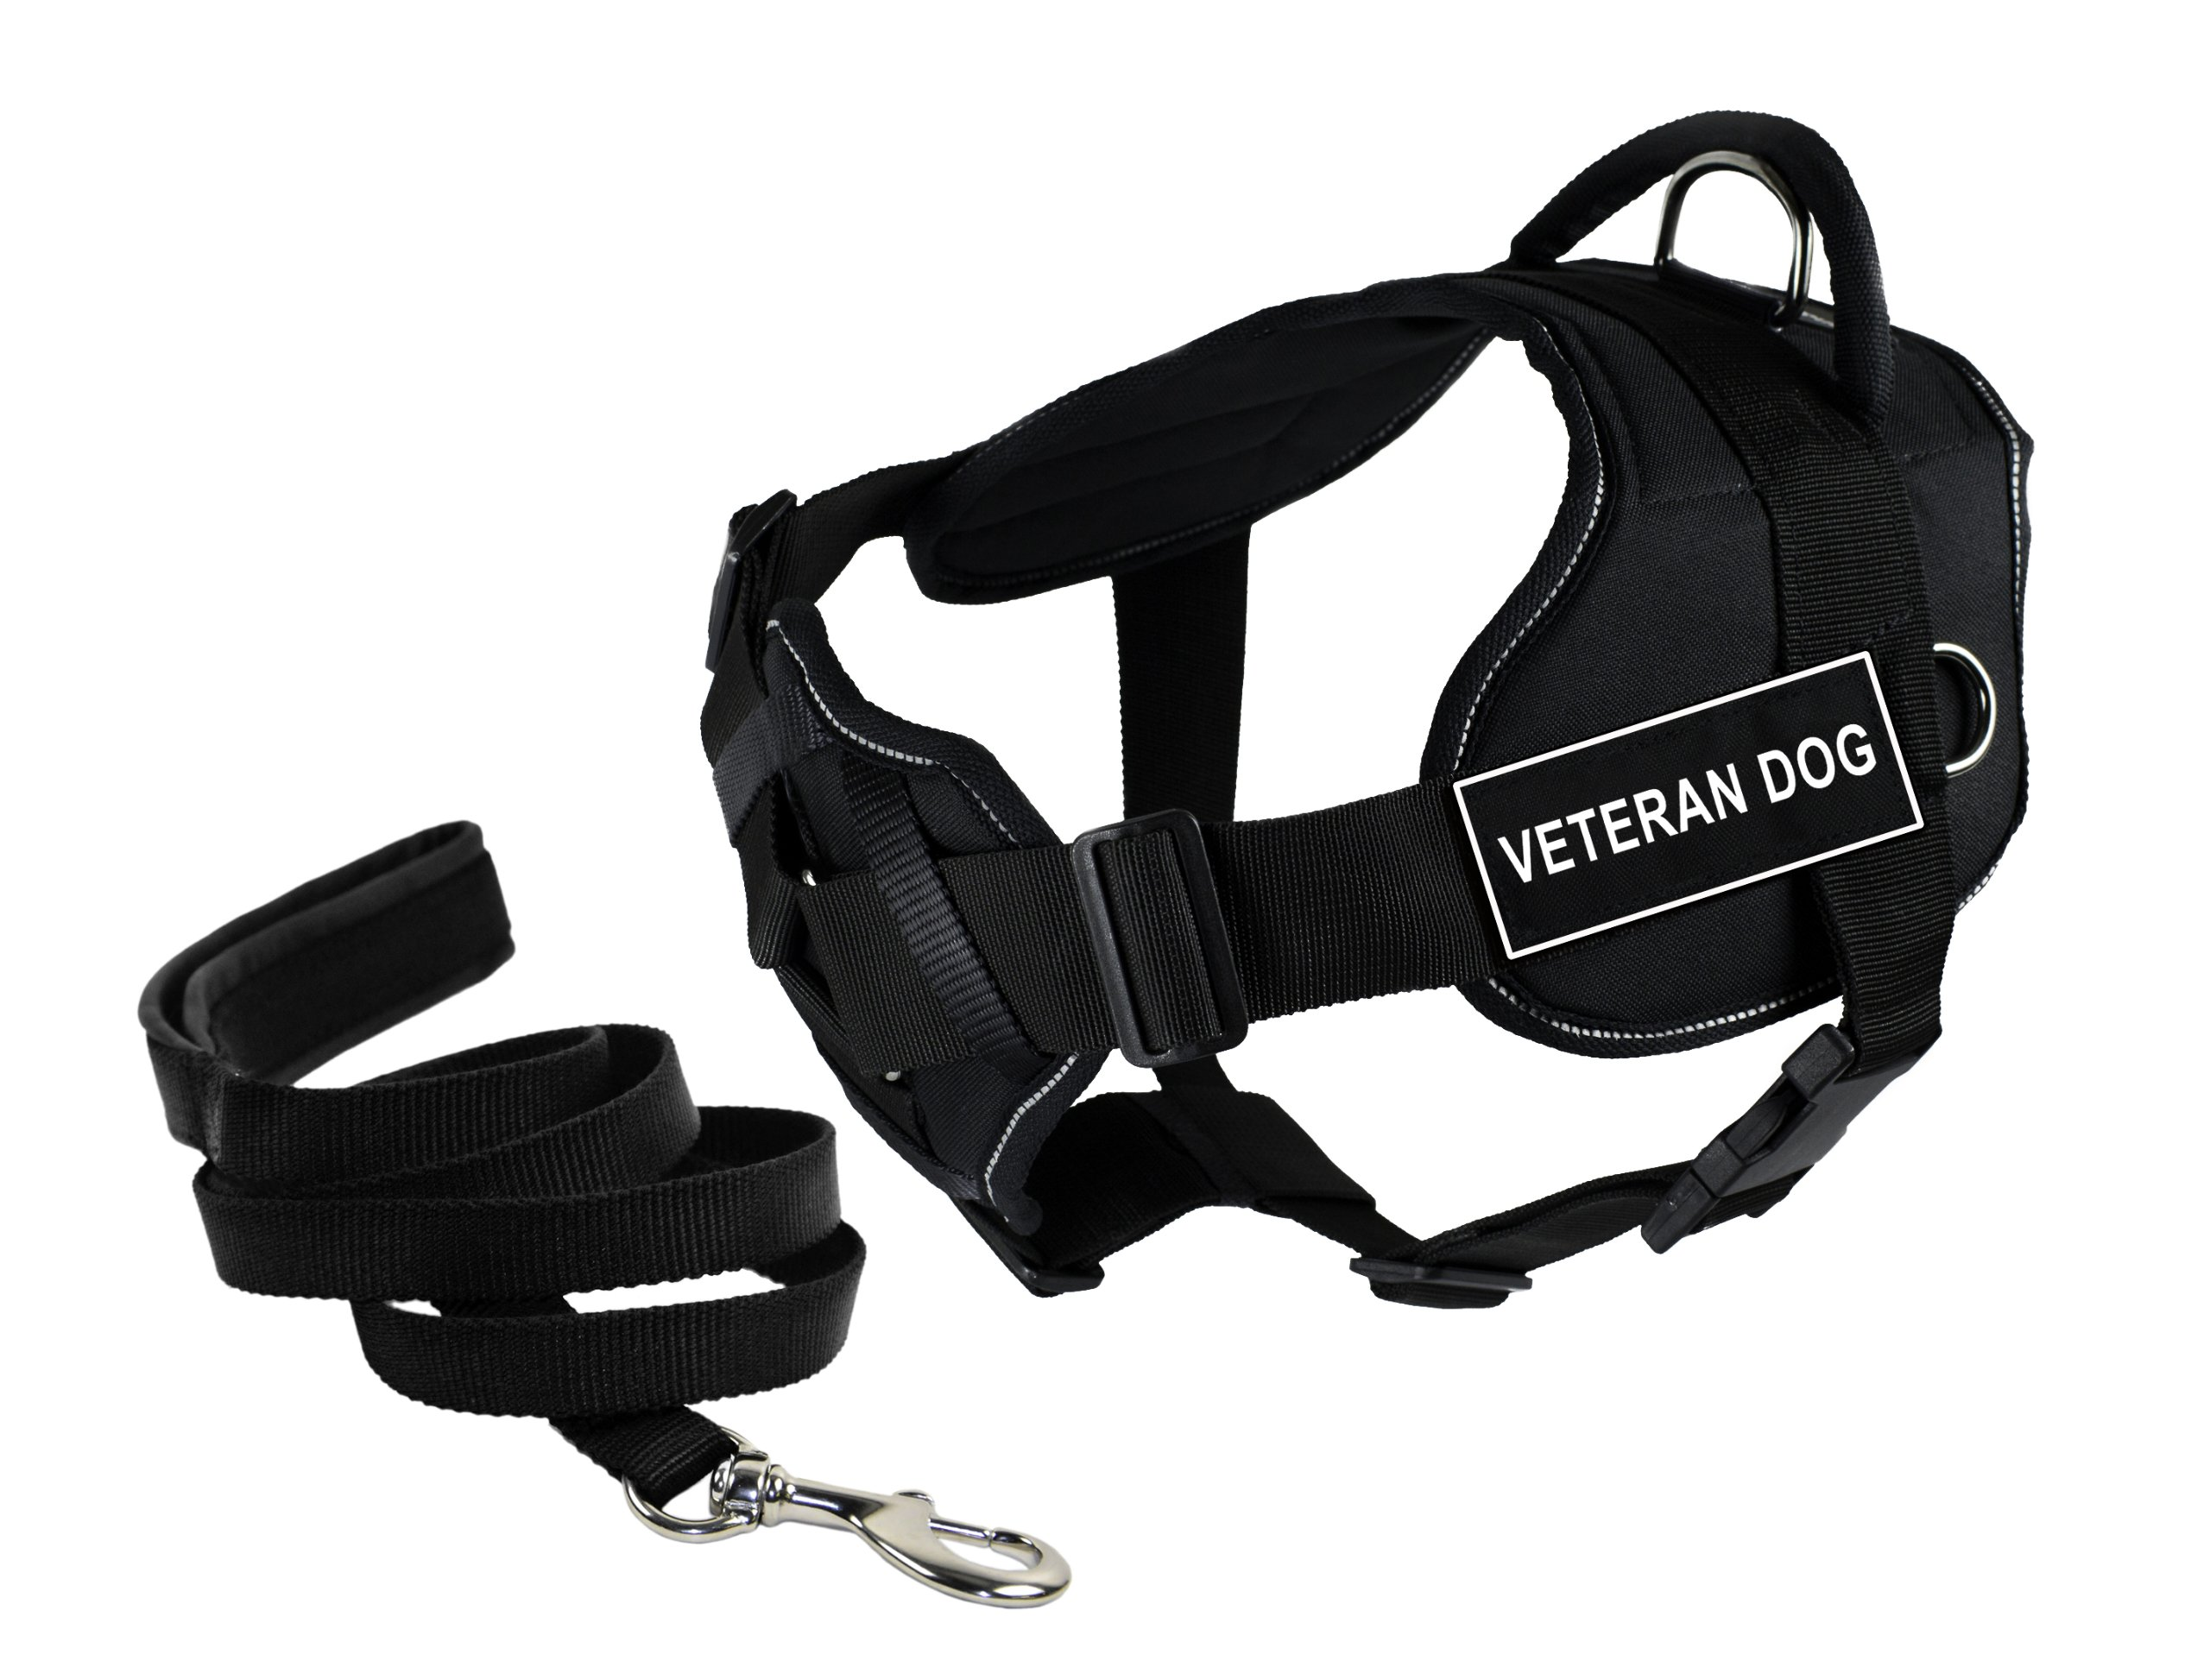 Dean & Tyler's DT Fun Chest Support ''VETERAN DOG'' Harness with Reflective Trim, Large, and 6 ft Padded Puppy Leash.